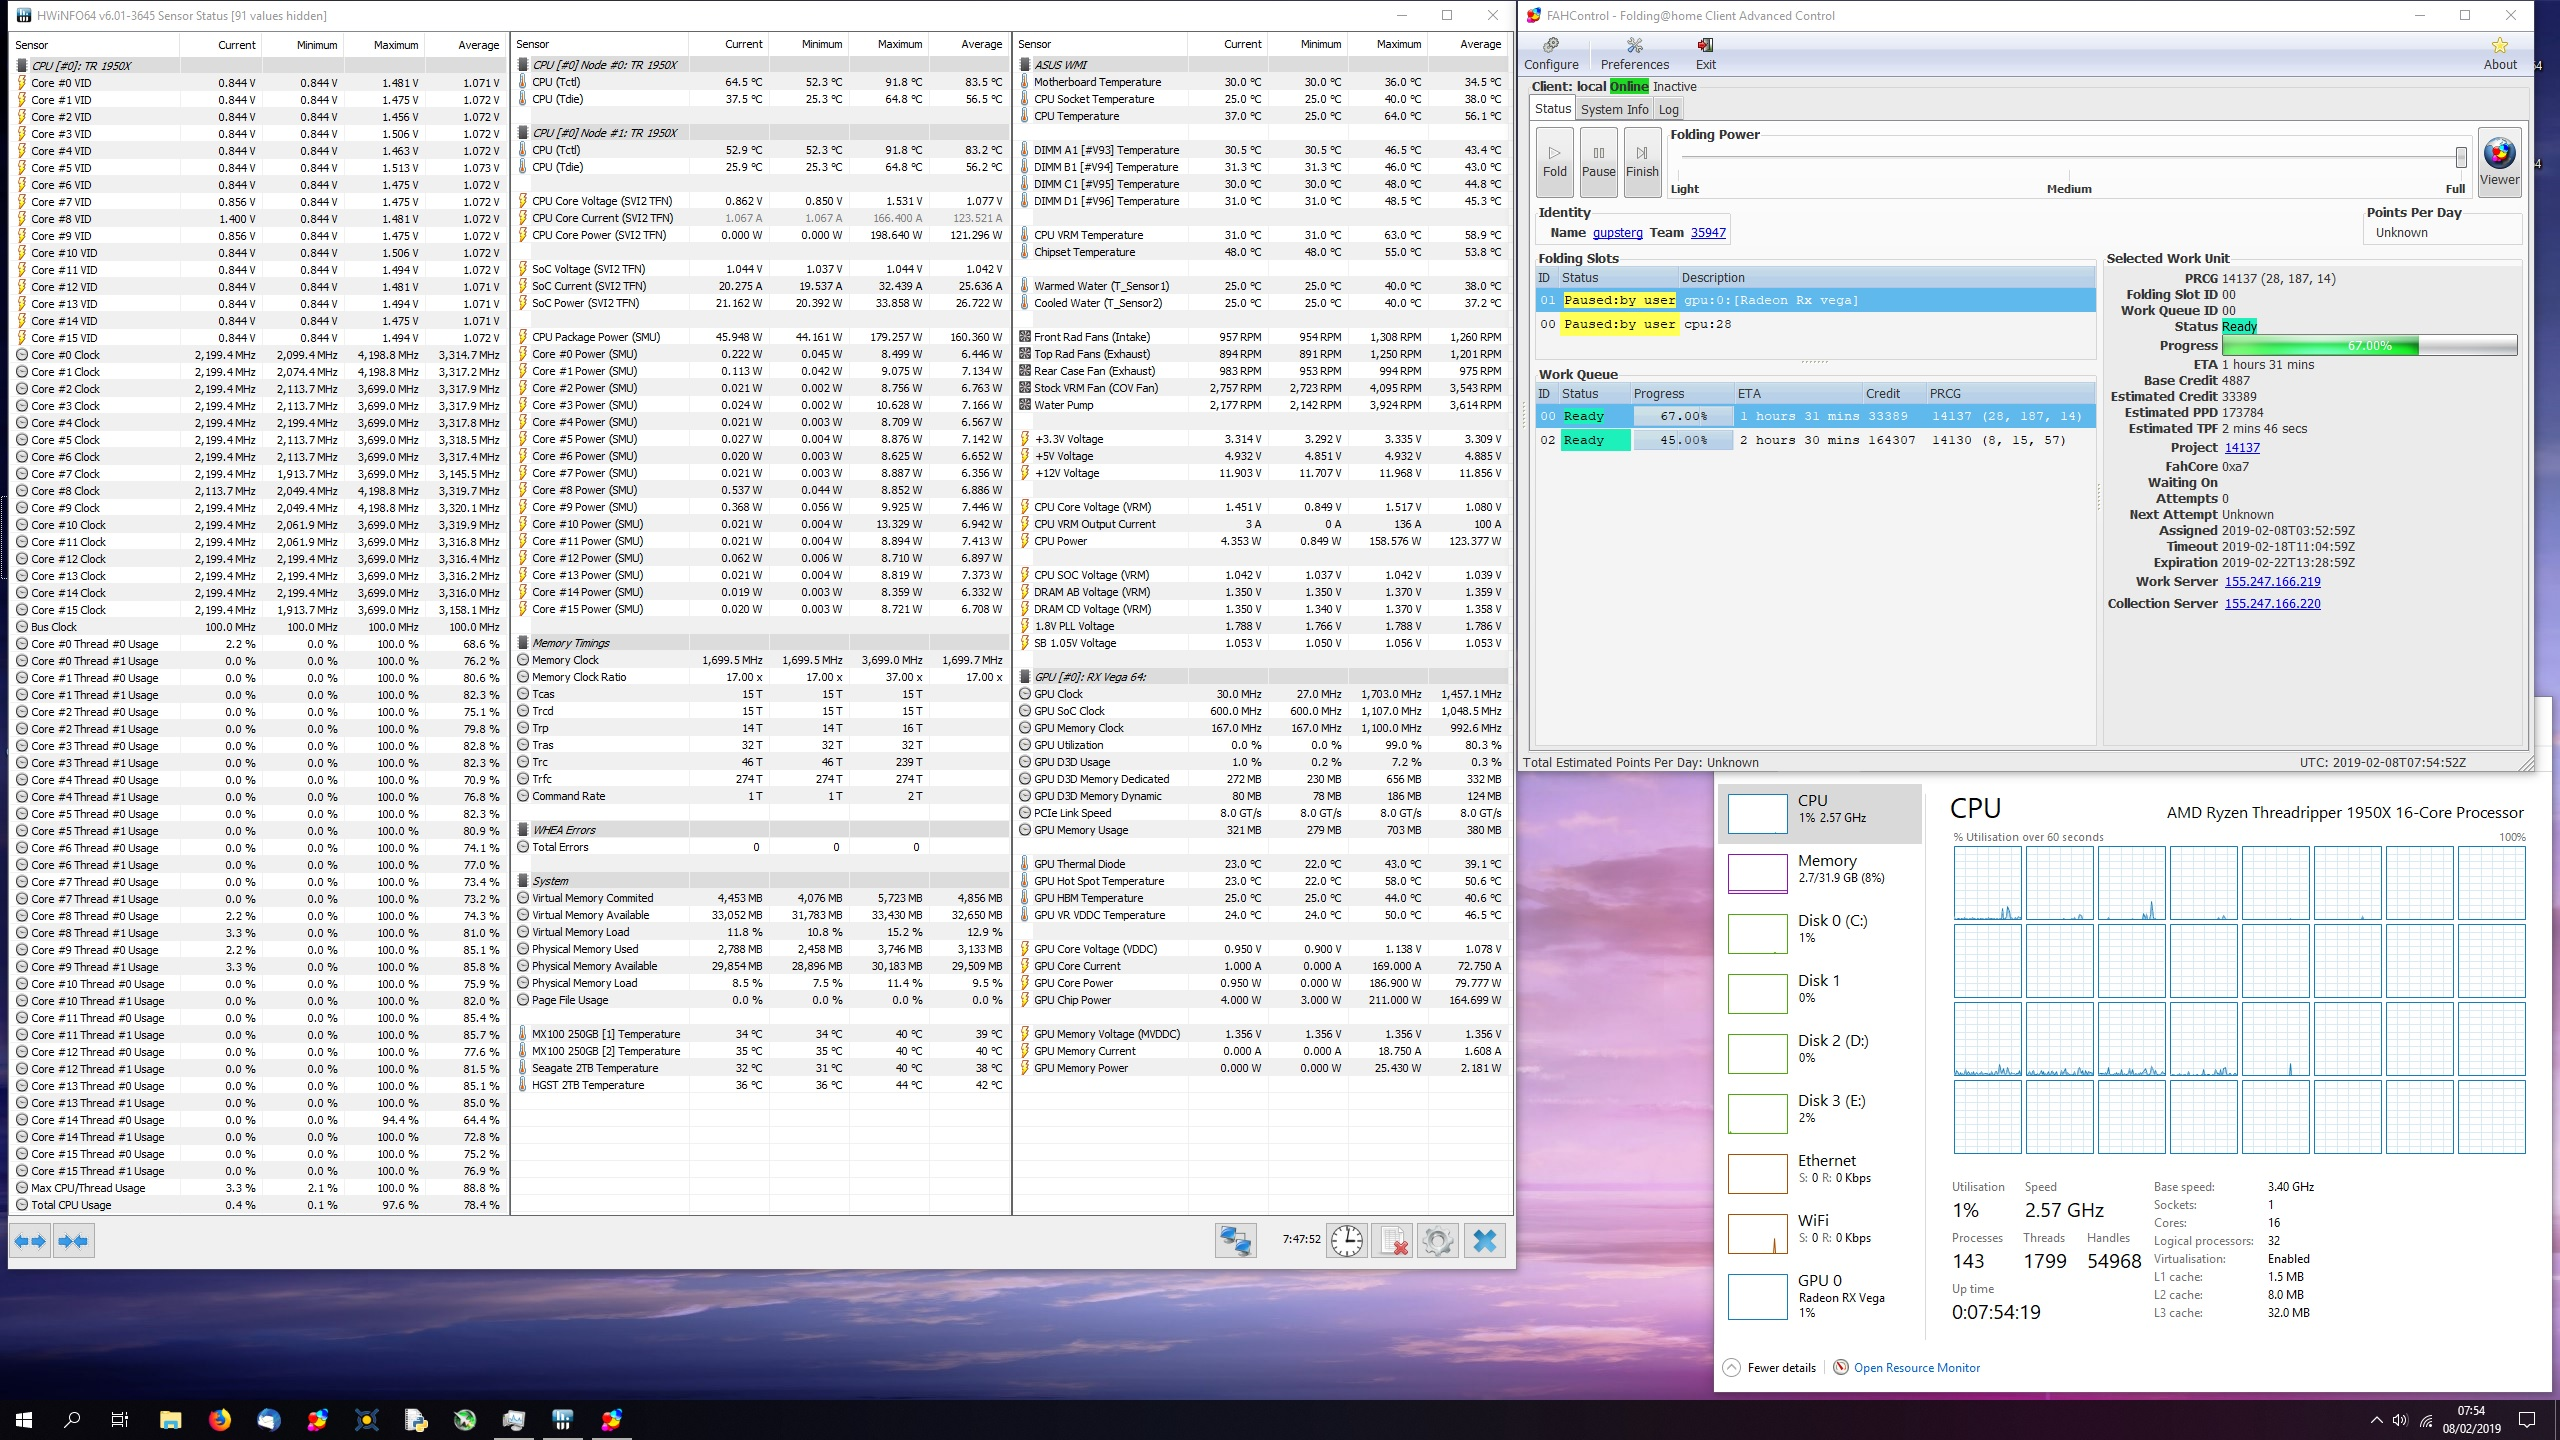 Click image for larger version  Name:f@h 5 fan tweak room 21.5C 7.75hr PWM PASS.jpg Views:3 Size:1.24 MB ID:252848